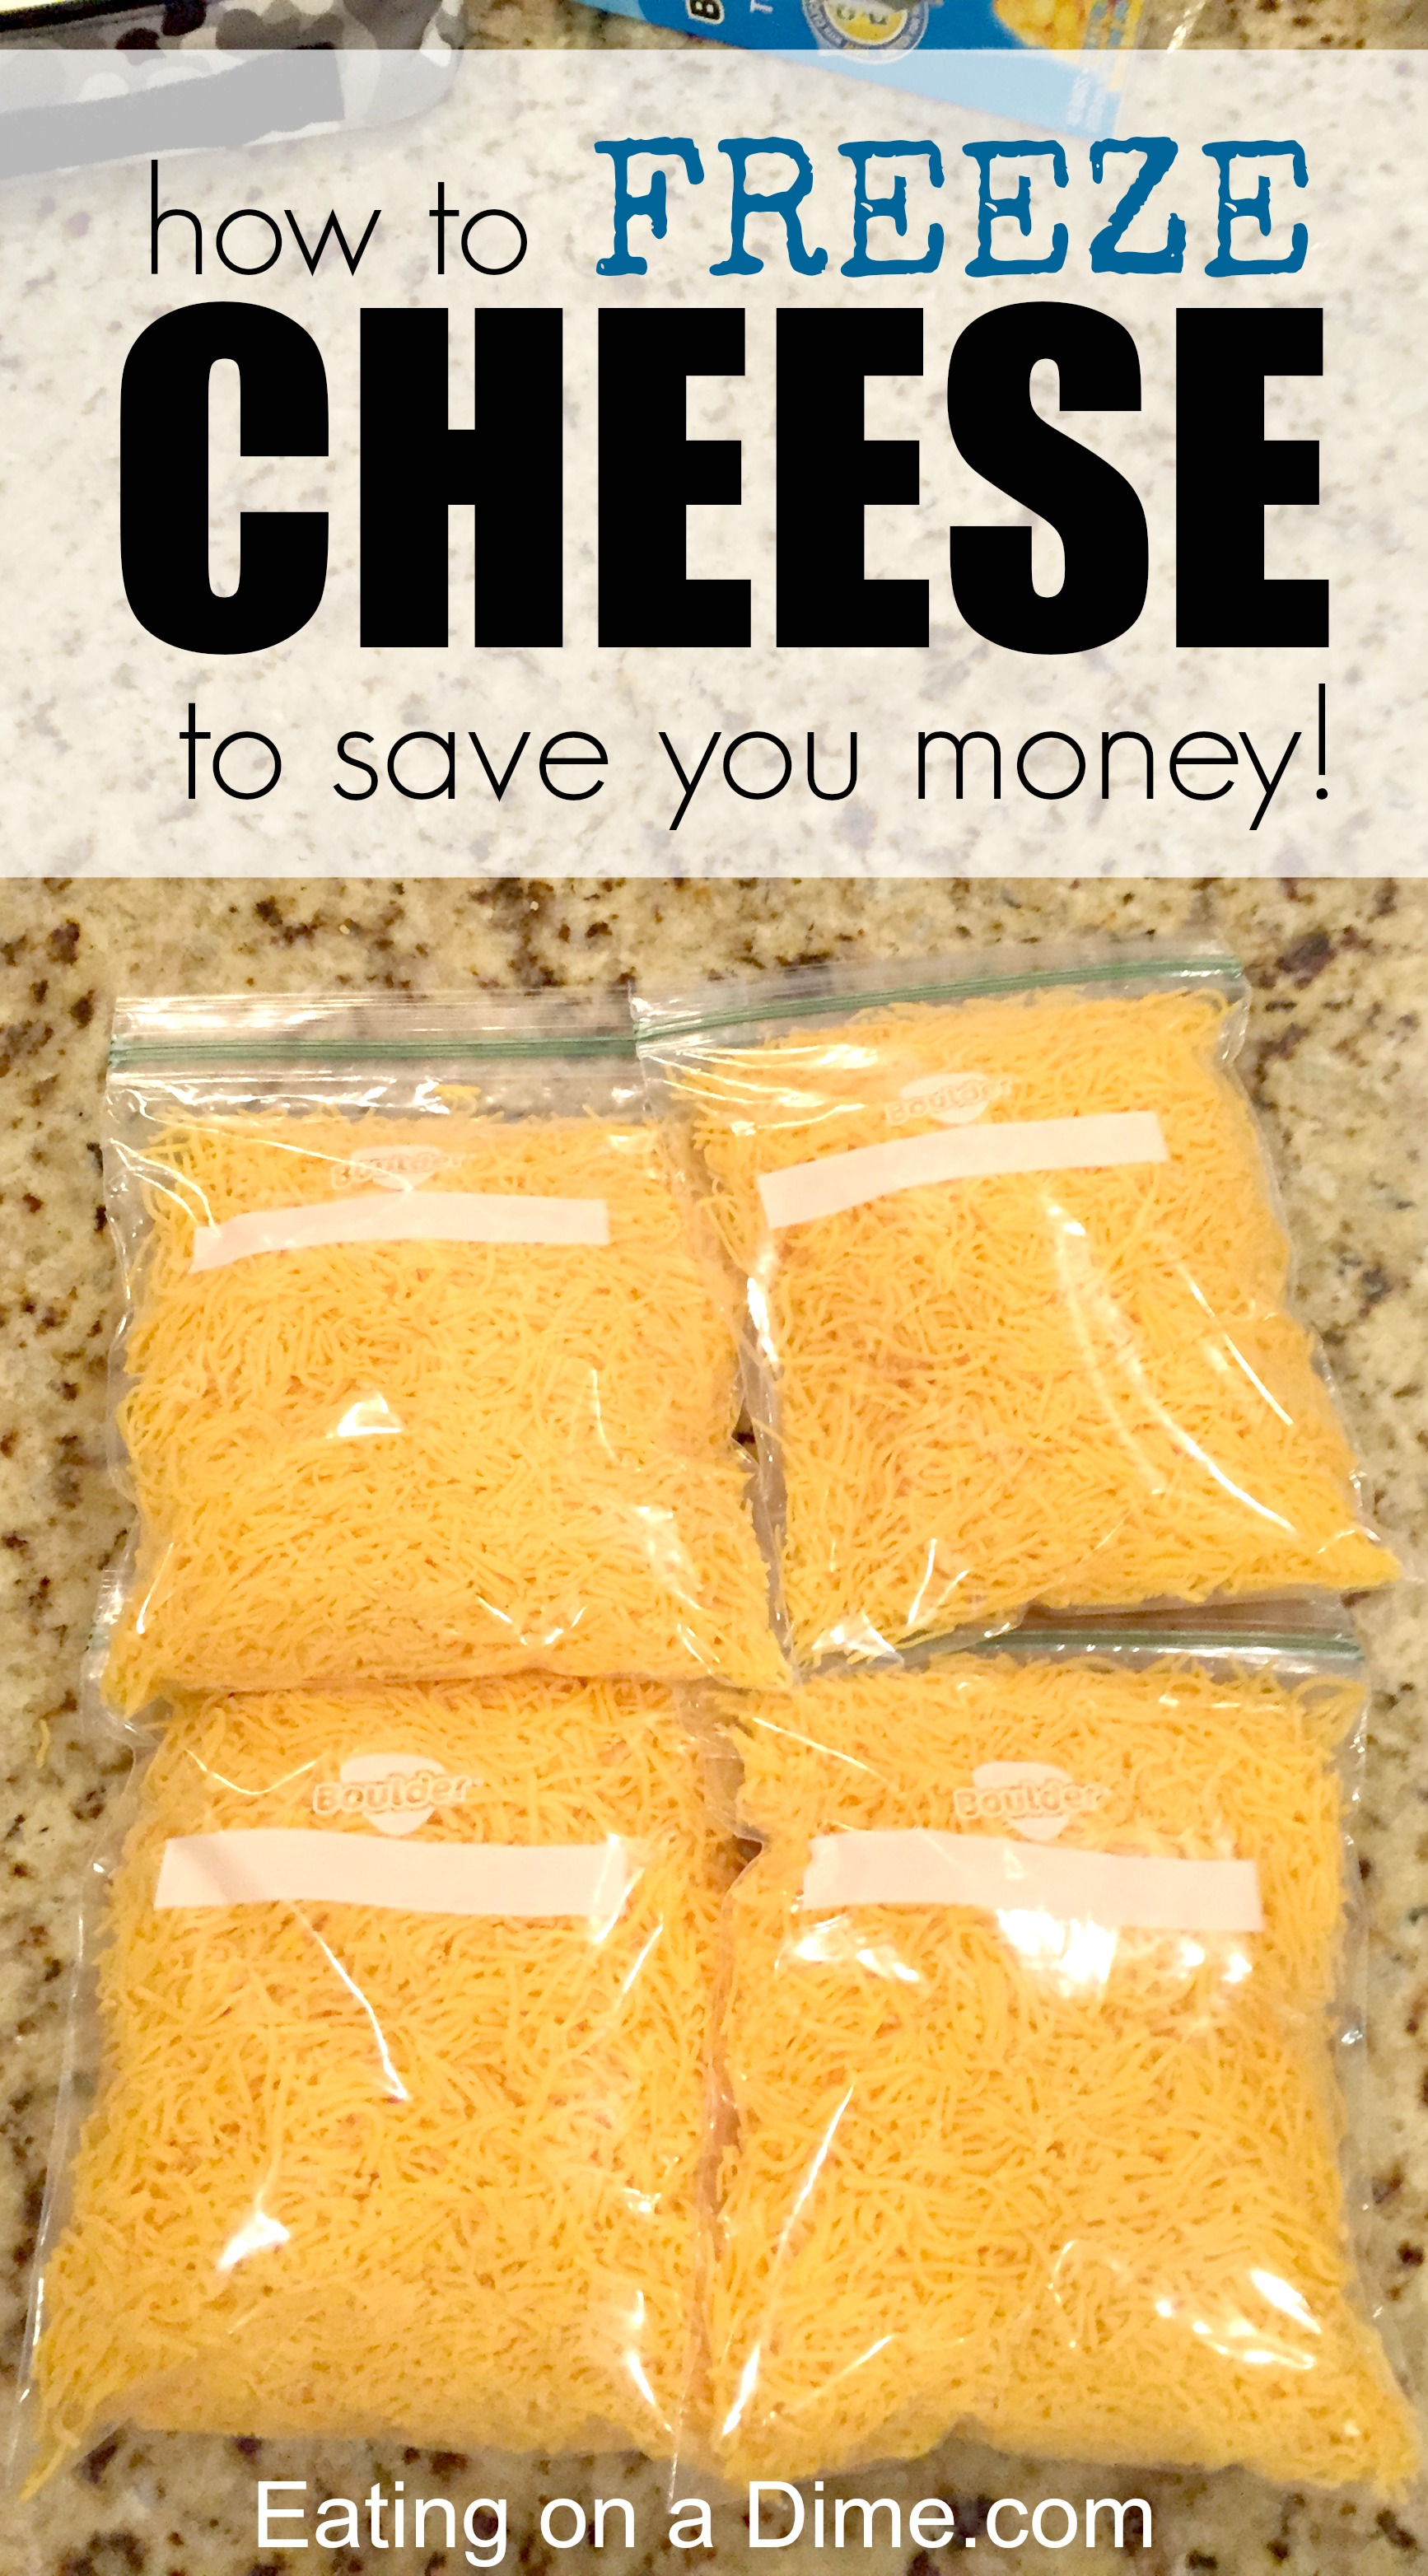 Can you freeze cheese - Learn how to freeze cheese